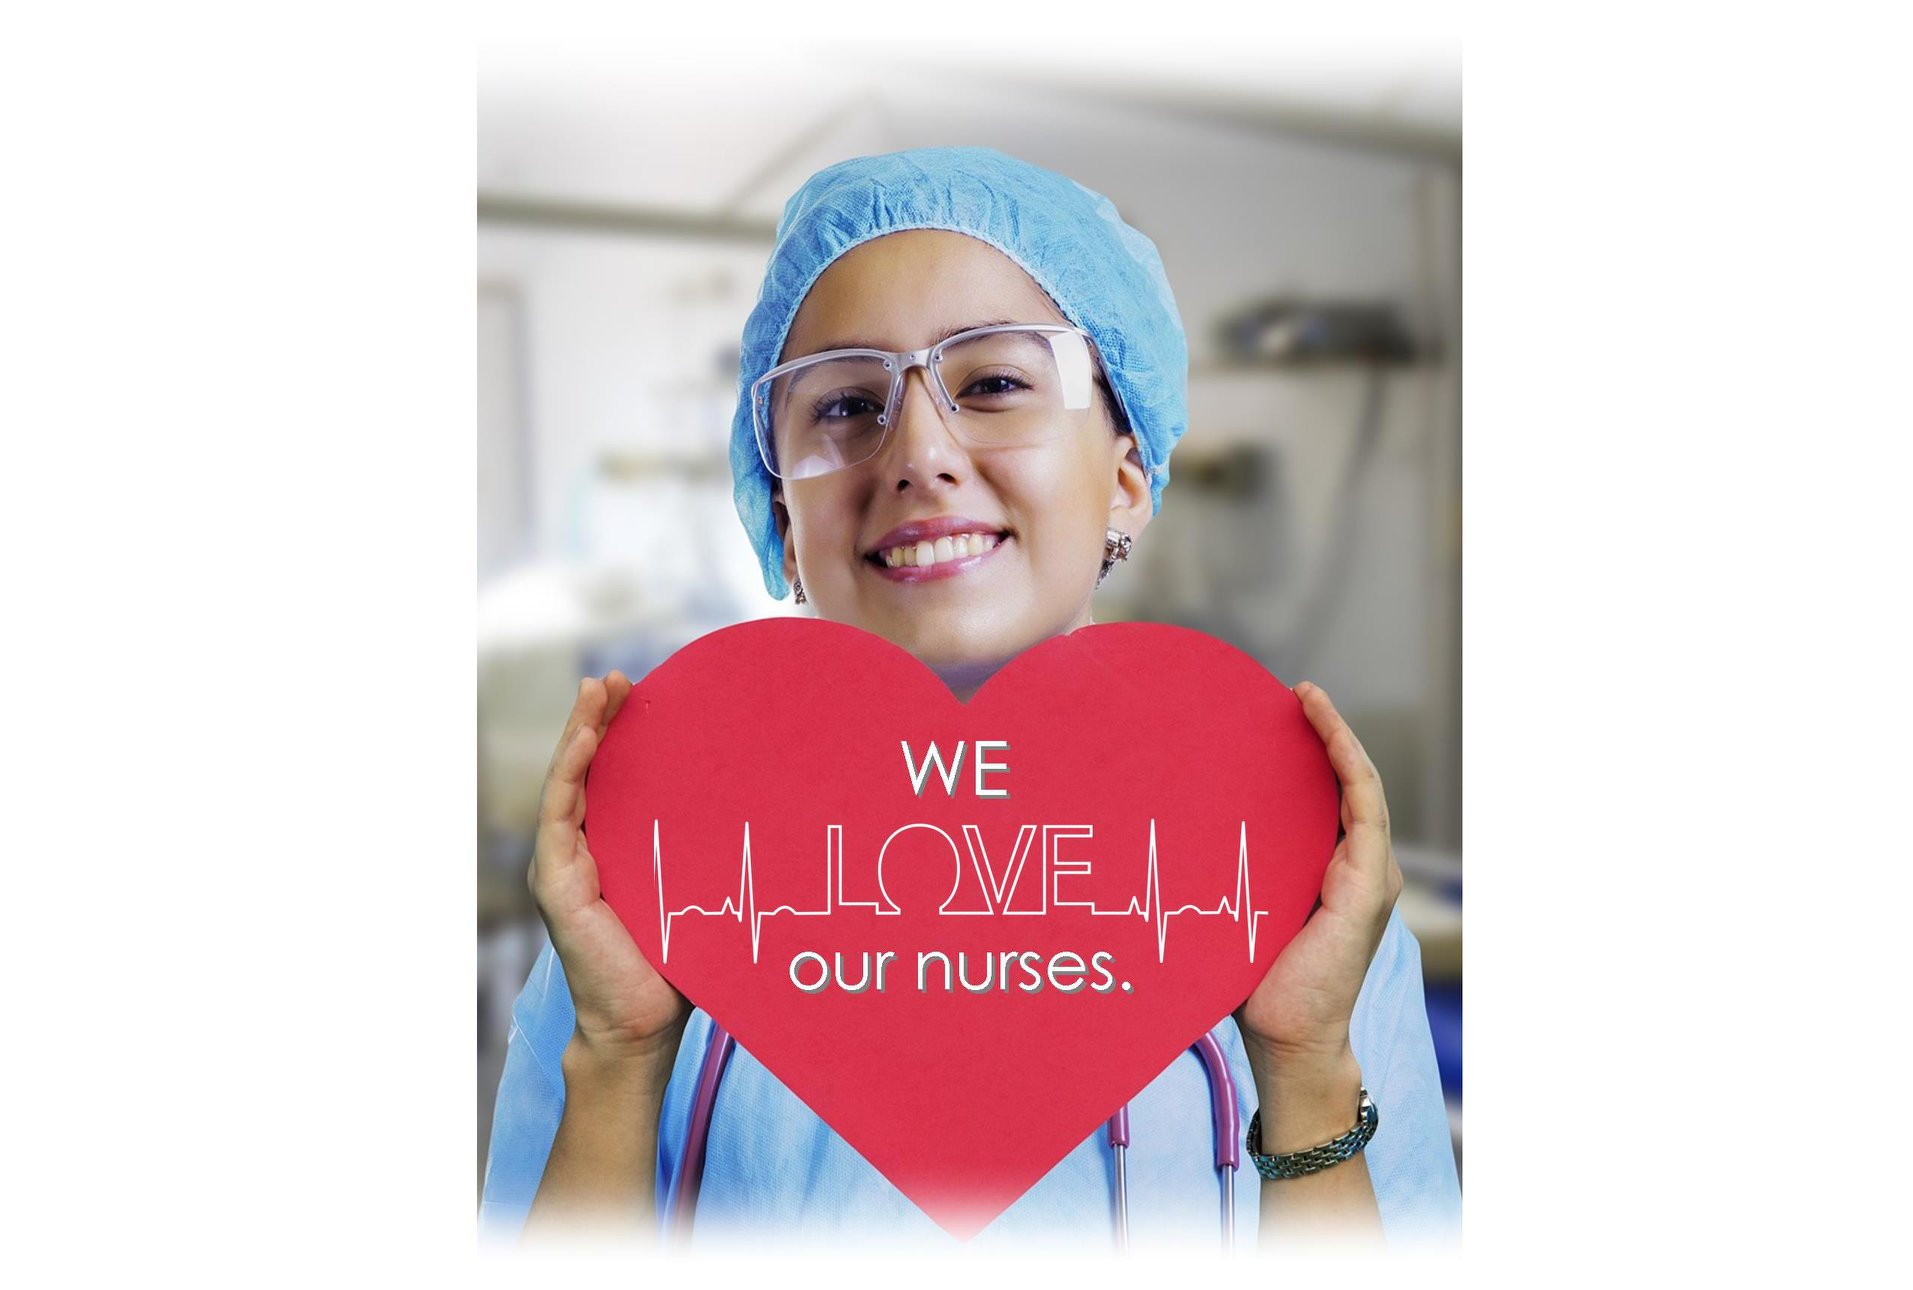 AZ Nurses Network - We Love our Nurses